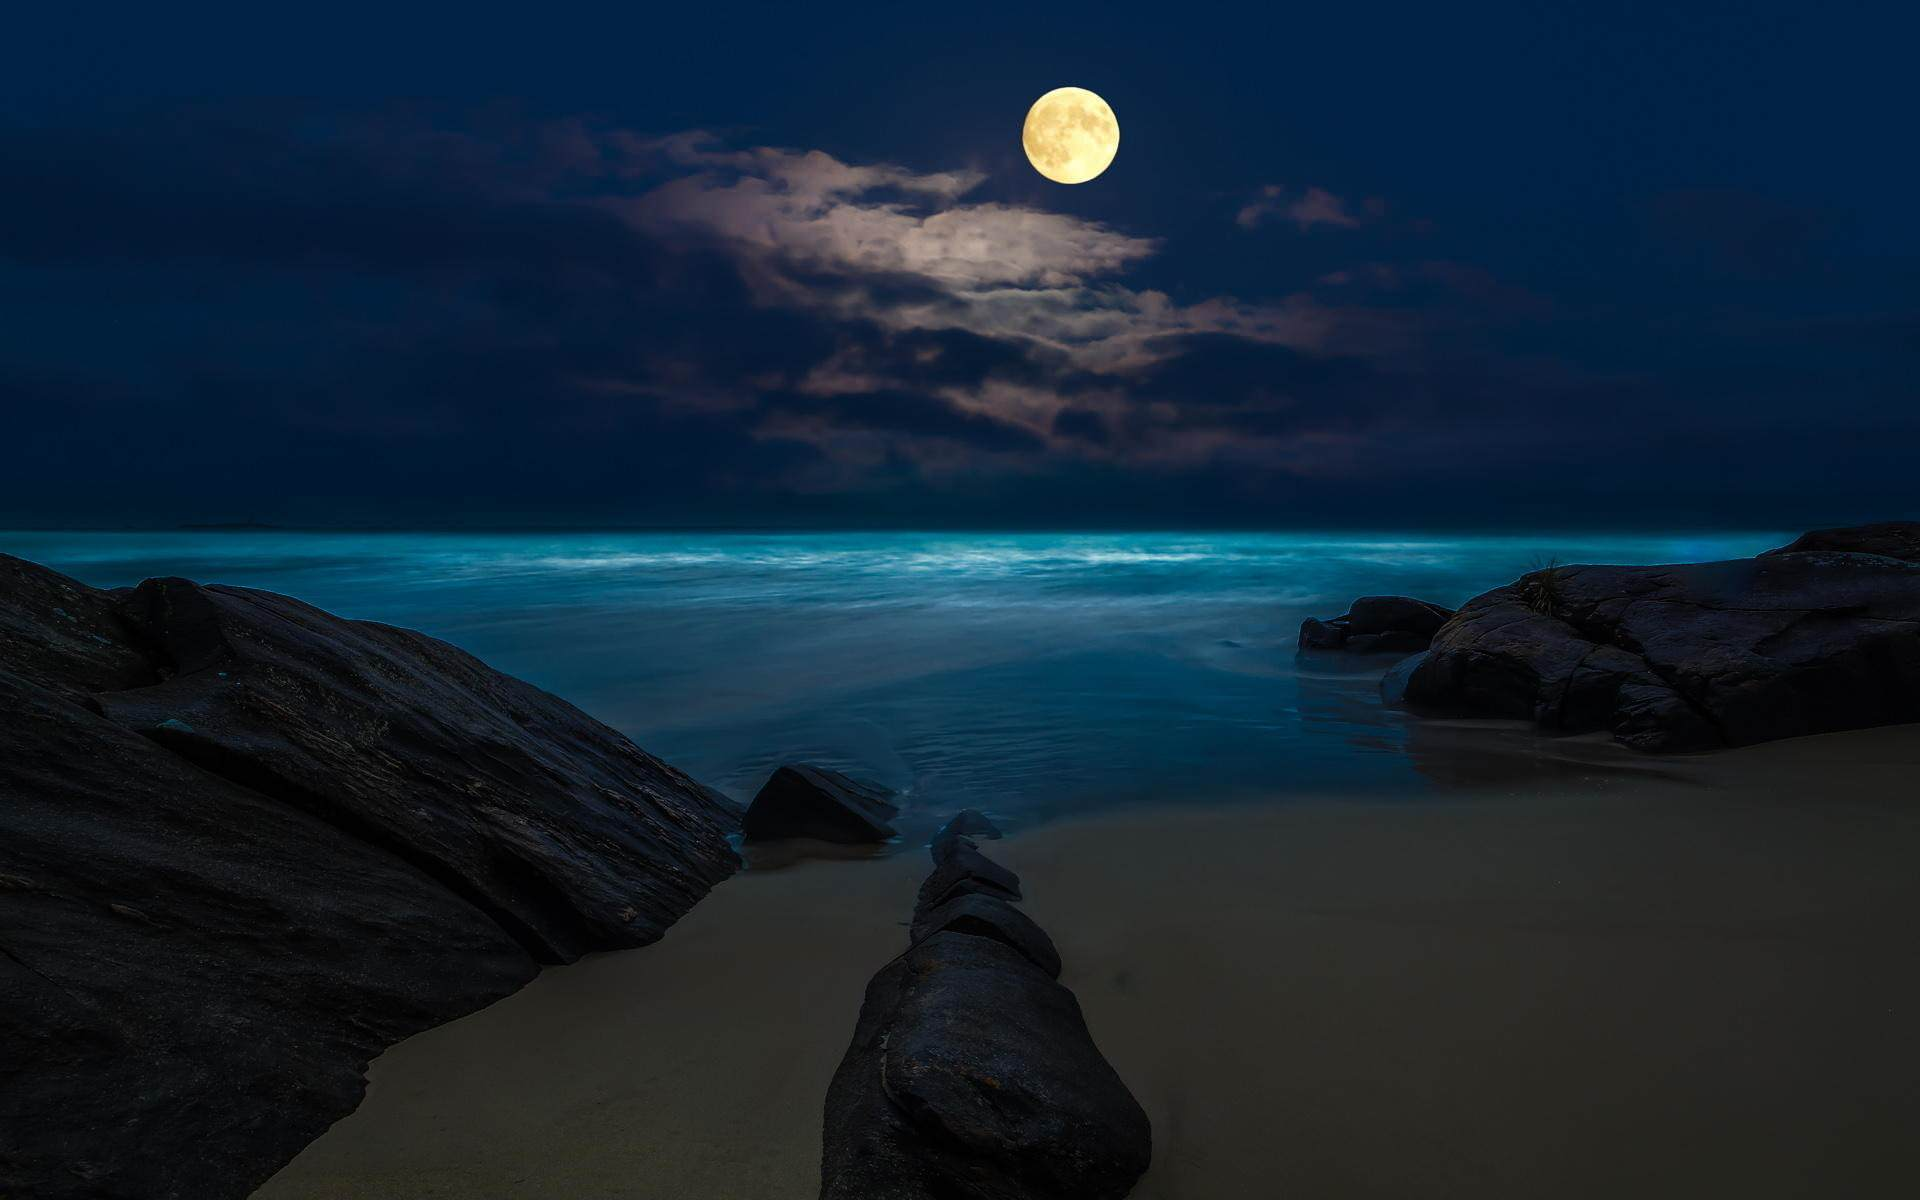 Tropical Waves Sky Mountains Clouds Island Moon Night: 27+ Mesmerizing Moon Backgrounds